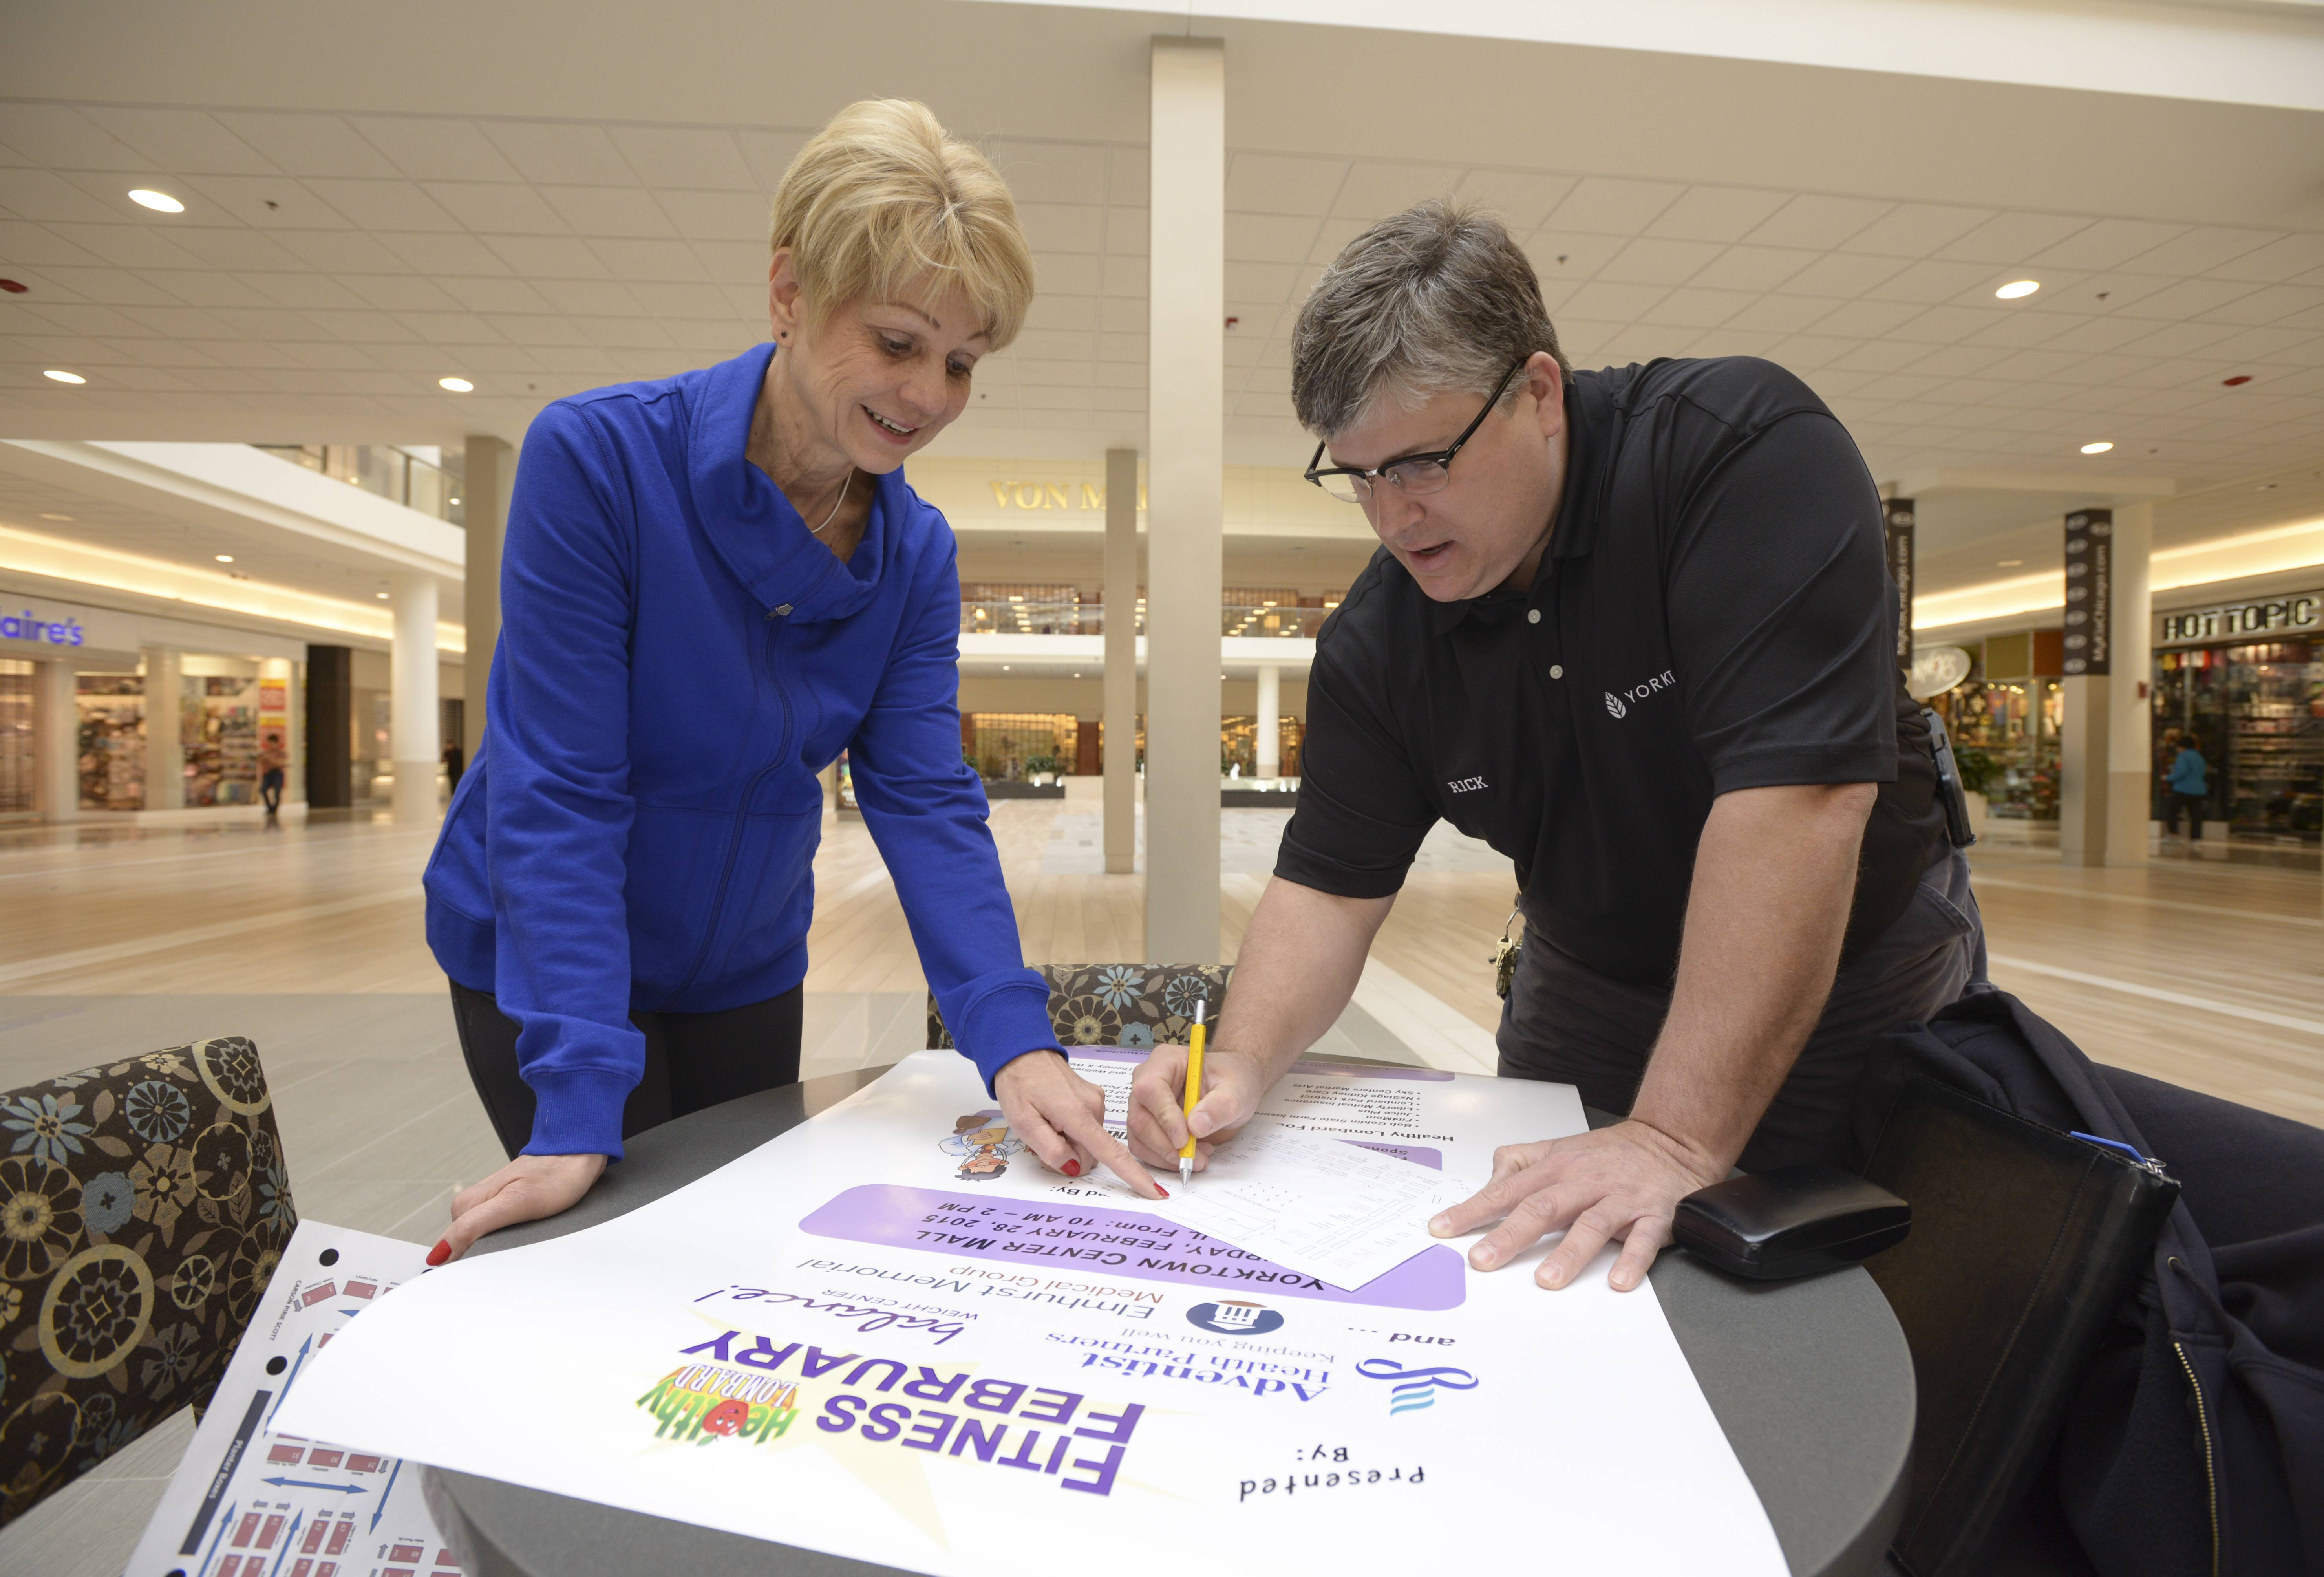 Jay Wojcik, the volunteer director of Healthy Lombard, works with Yorktown Center Chief Engineer Rick Fugger on the setup of the February Fitness Fair on Feb. 28.